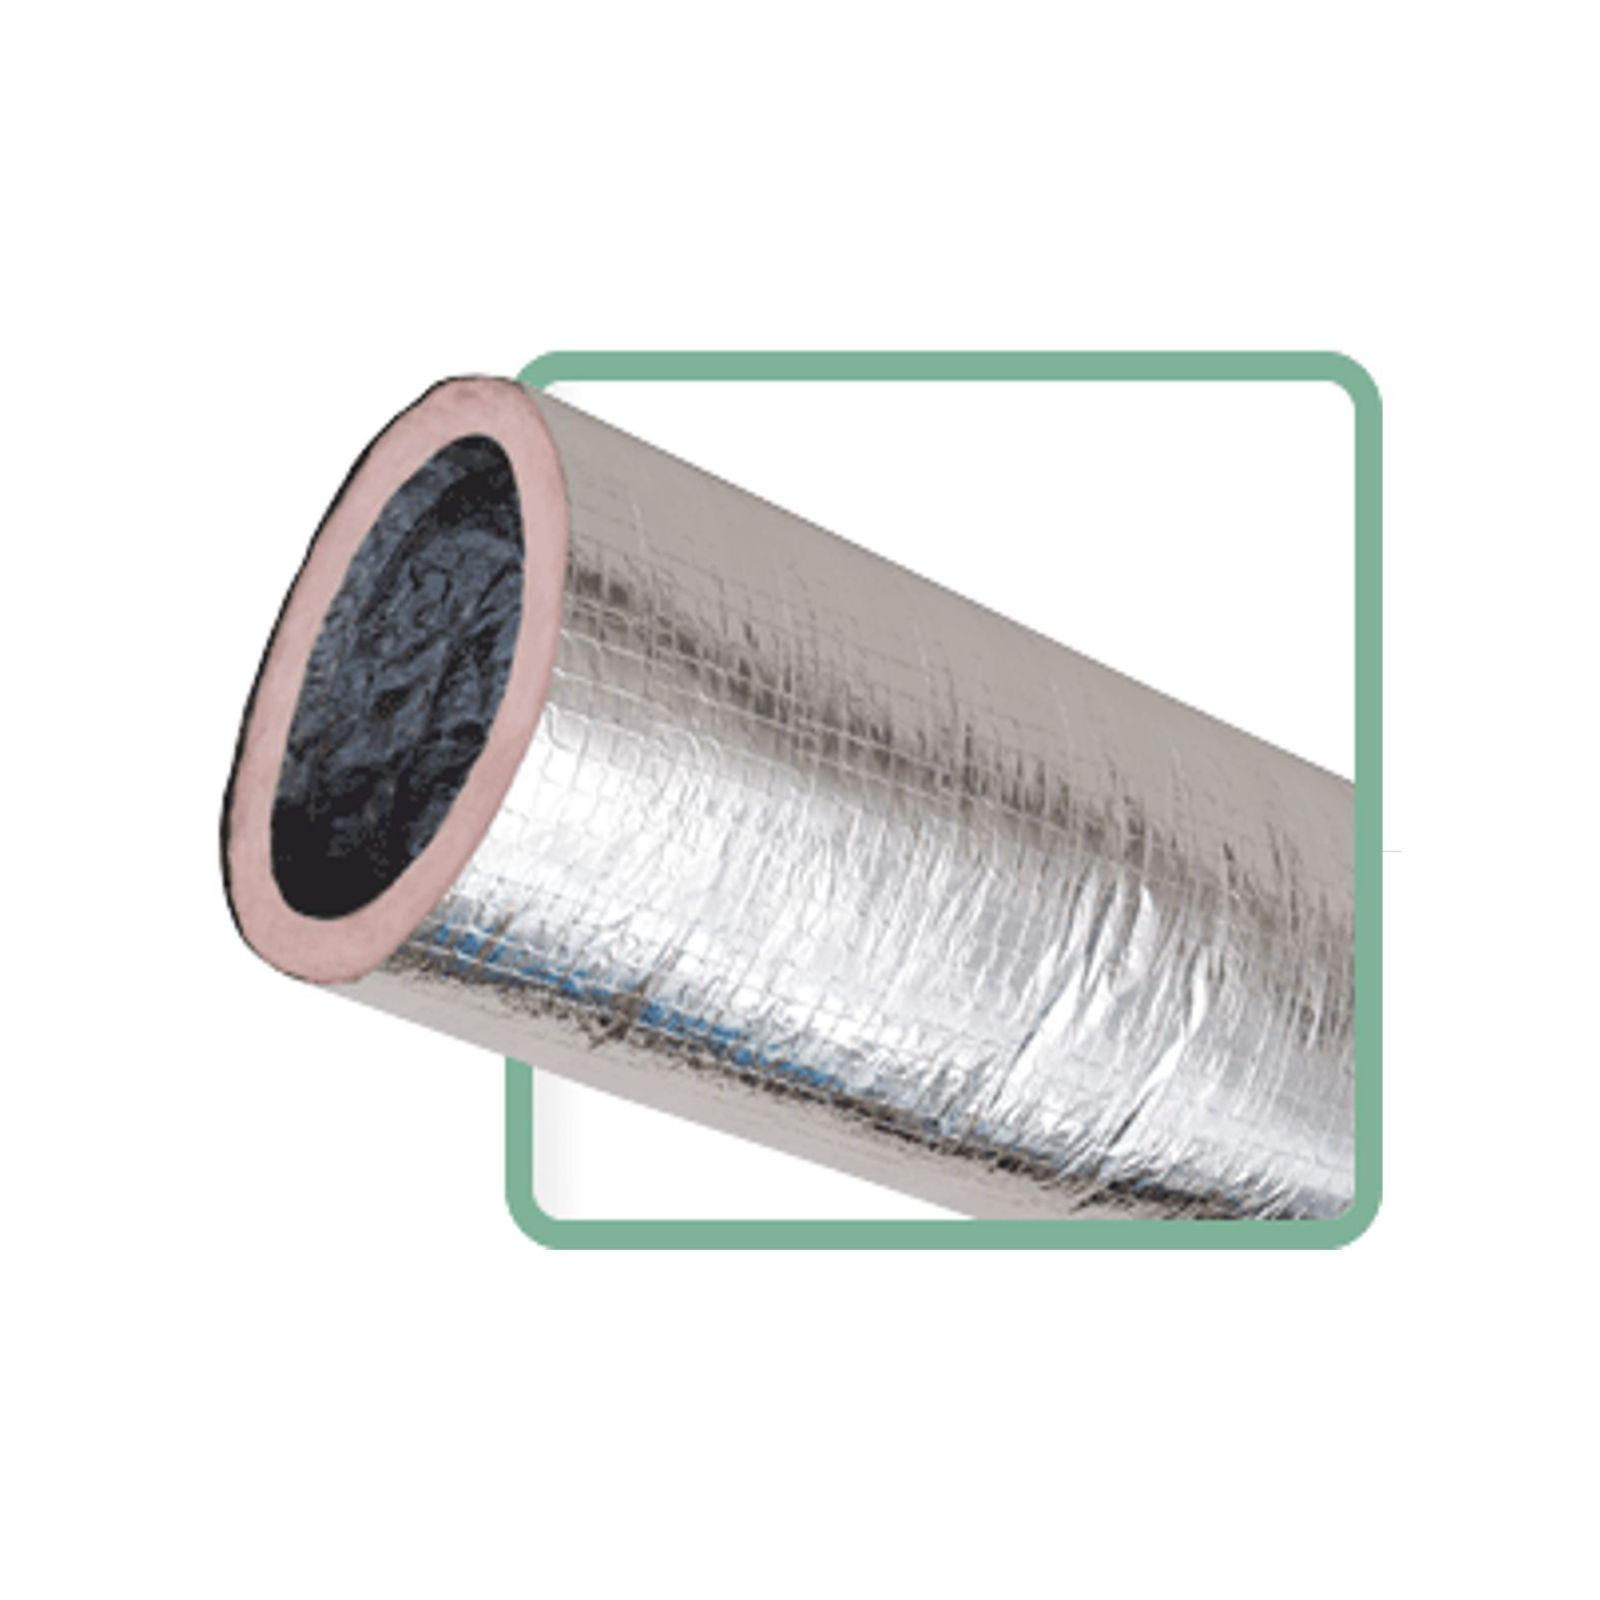 "Thermaflex 056306000004 - KM Silver Flex-Vent Insulated Flexible Air Duct, R8, 6"" X 50' Box"